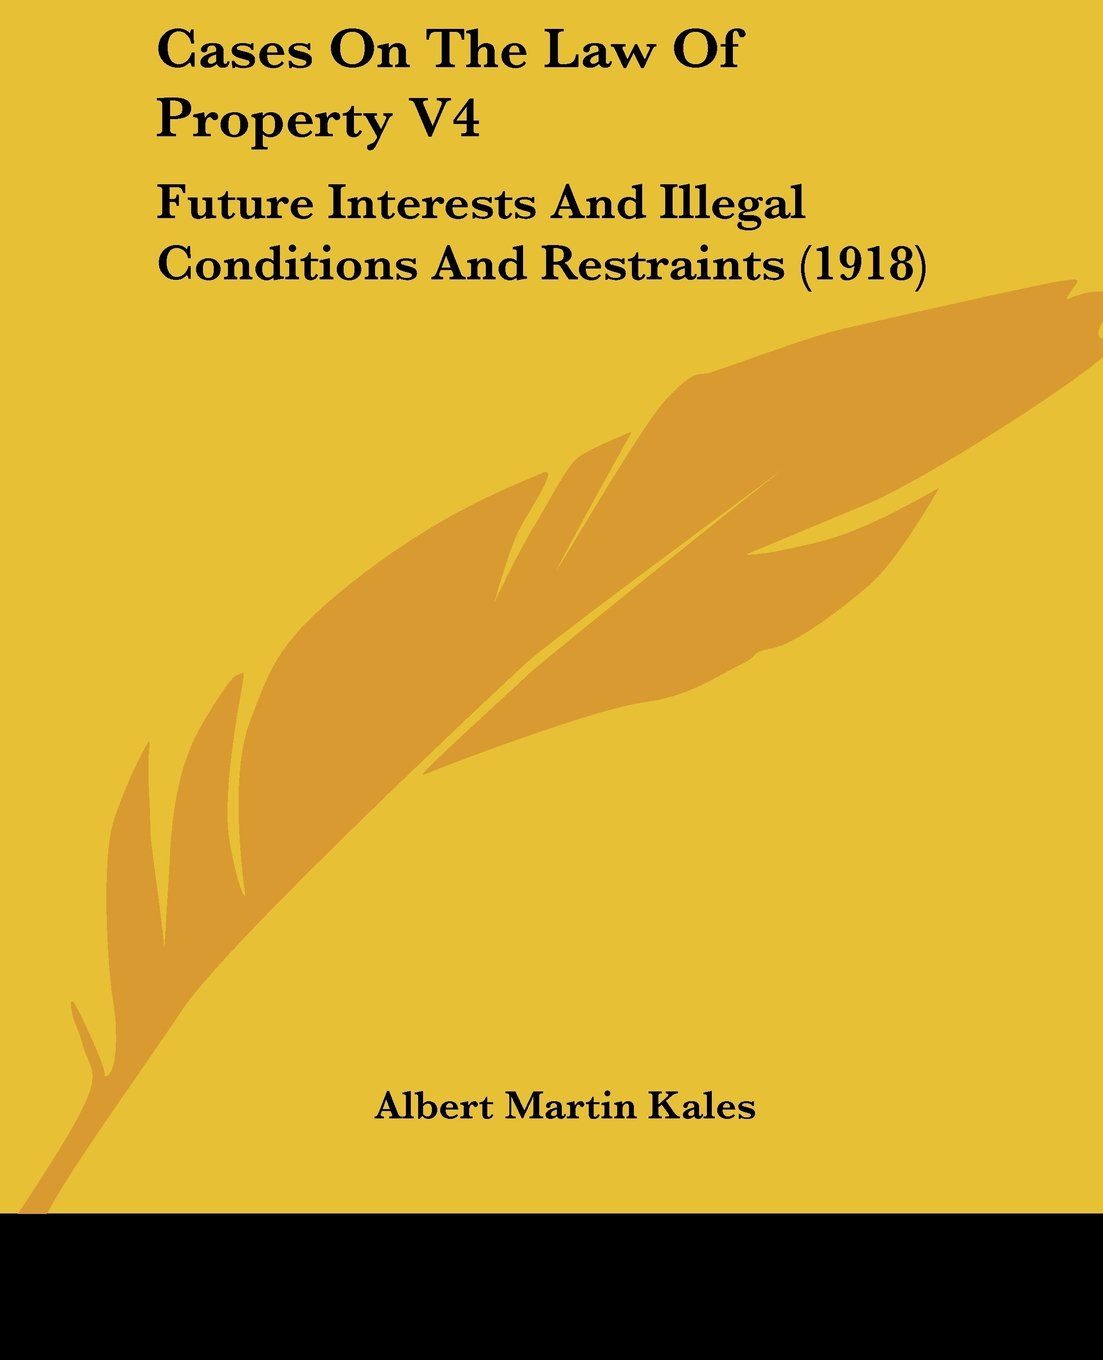 Cases On The Law Of Property V4: Future Interests And Illegal Conditions And Restraints (1918) PDF